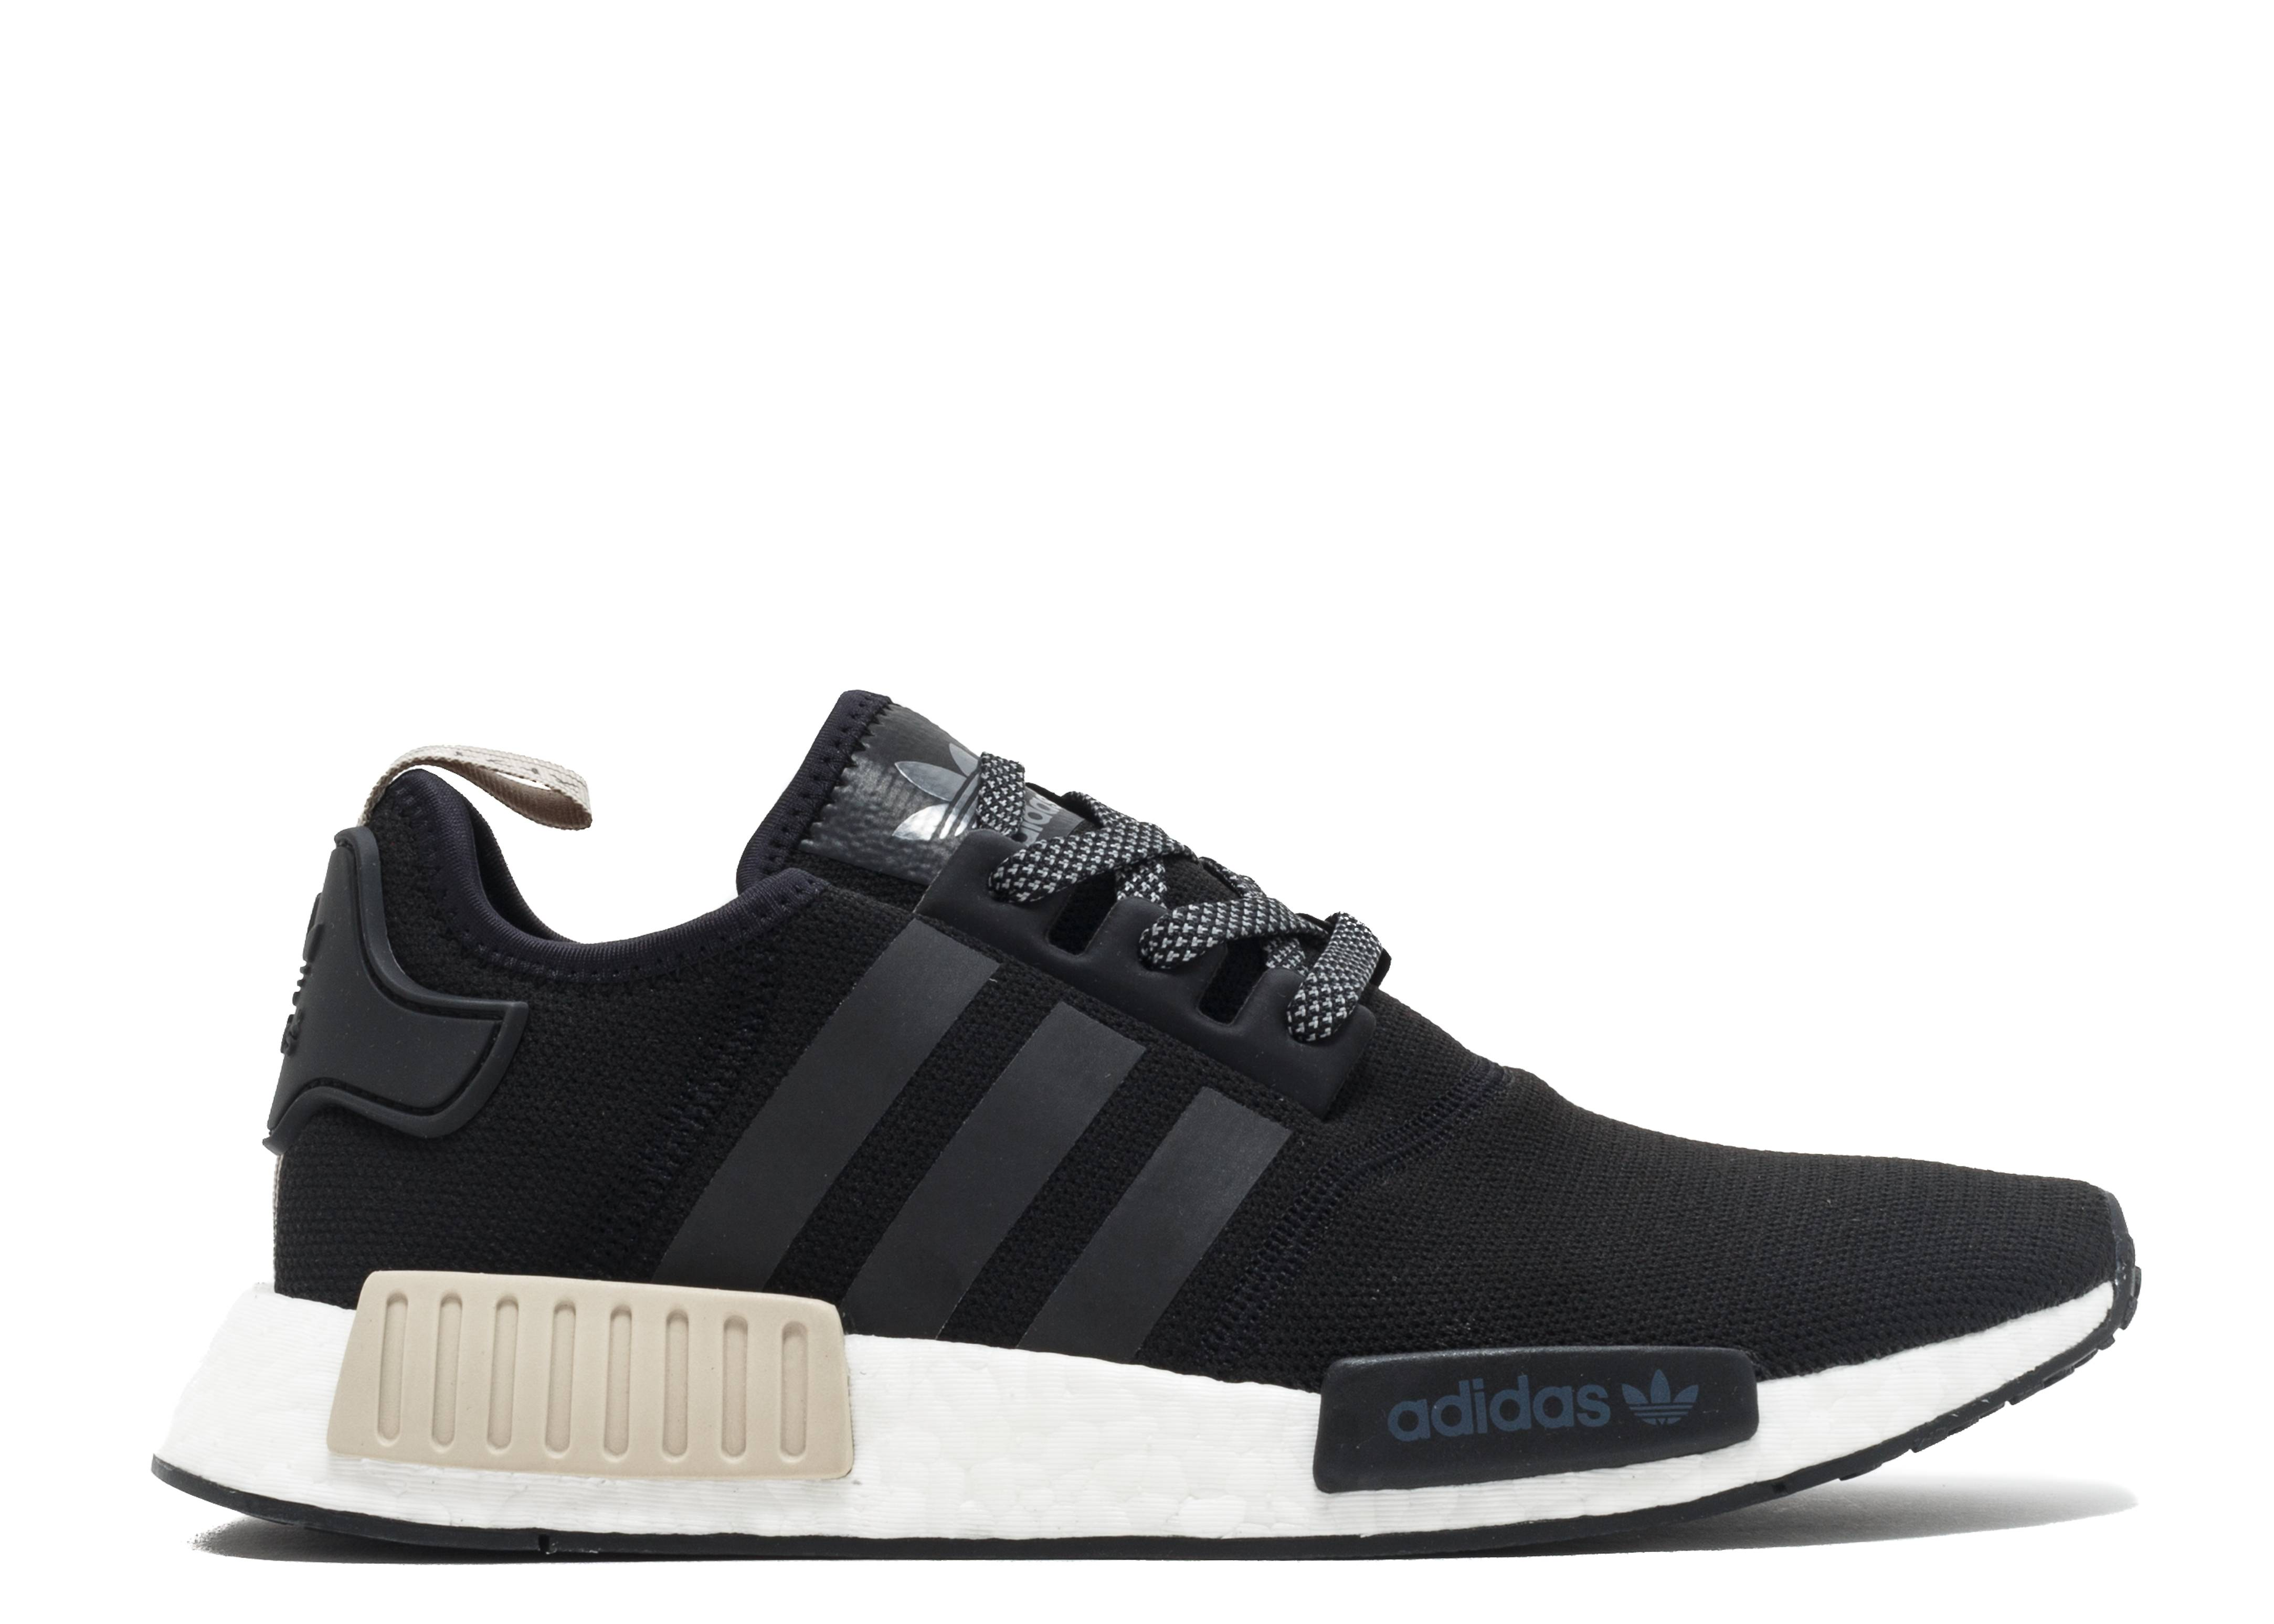 7a0225ad Nmd R1